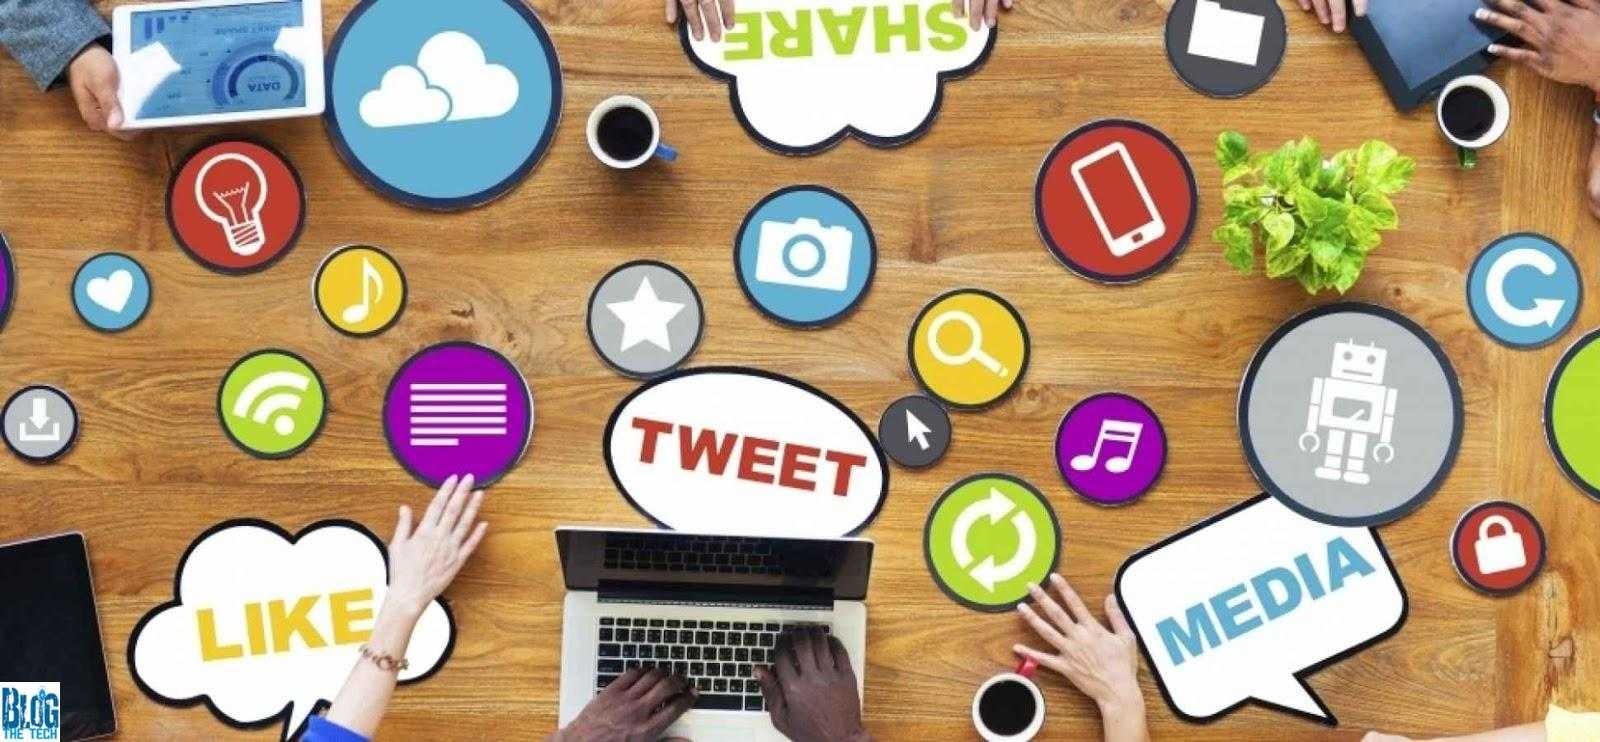 The biggest misconceptions surrounding social media marketing